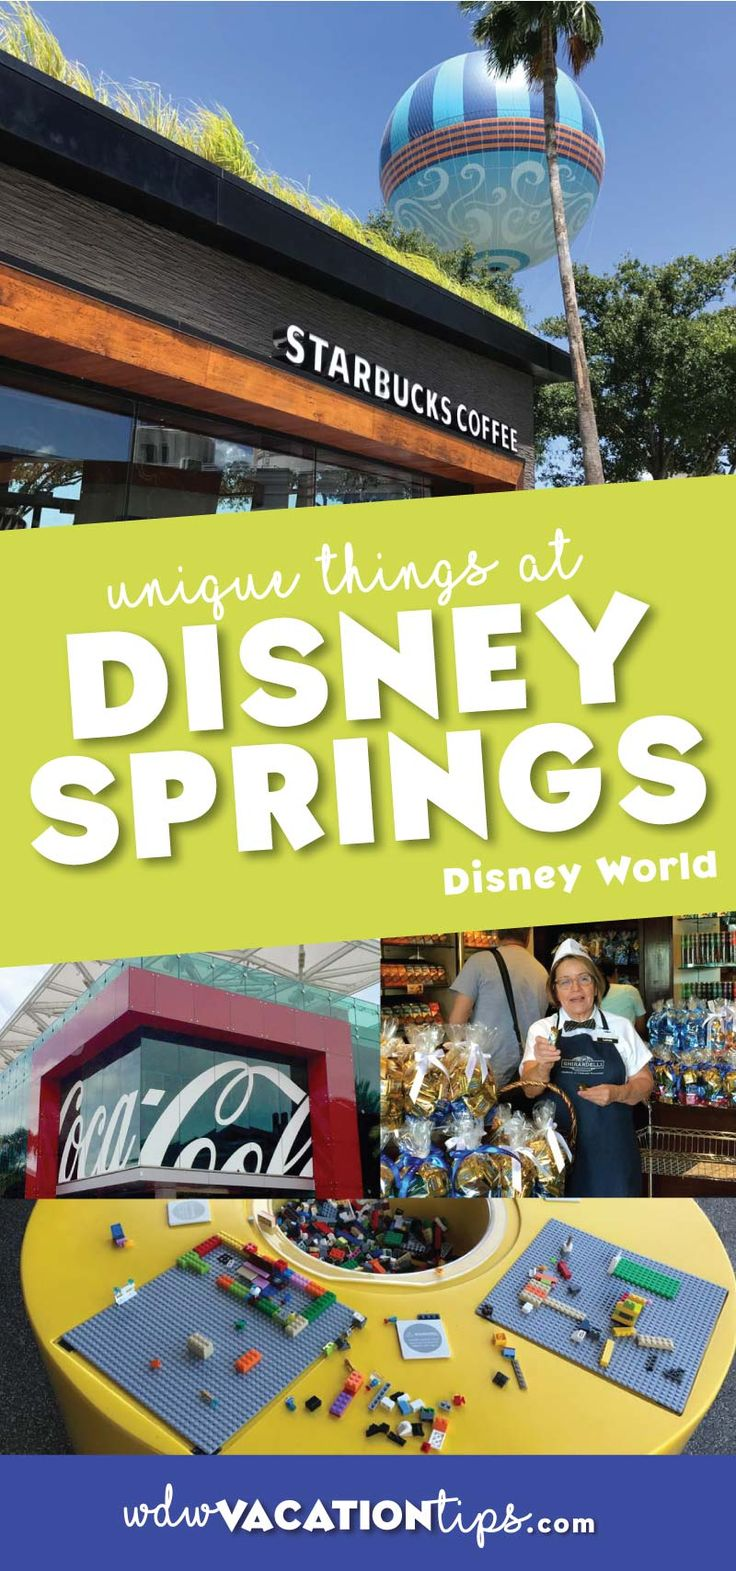 FANTASTIC ideas for what to do on your day at Disney Springs Walt Disney World.